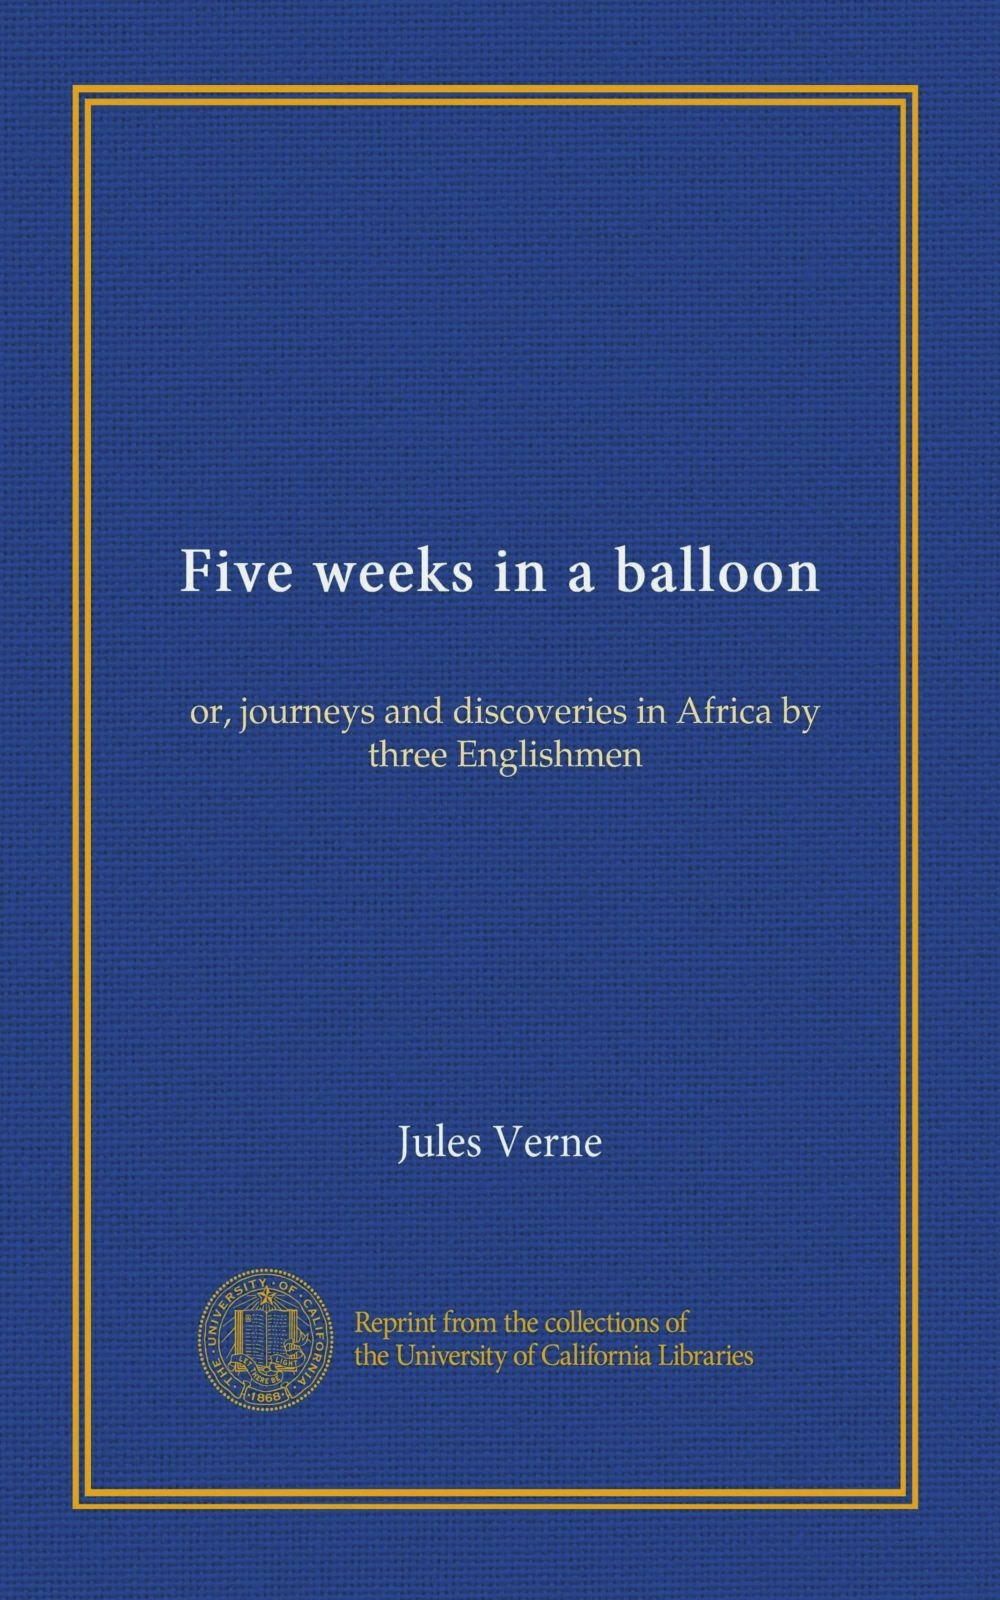 Five weeks in a balloon: or, journeys and discoveries in Africa by three Englishmen PDF